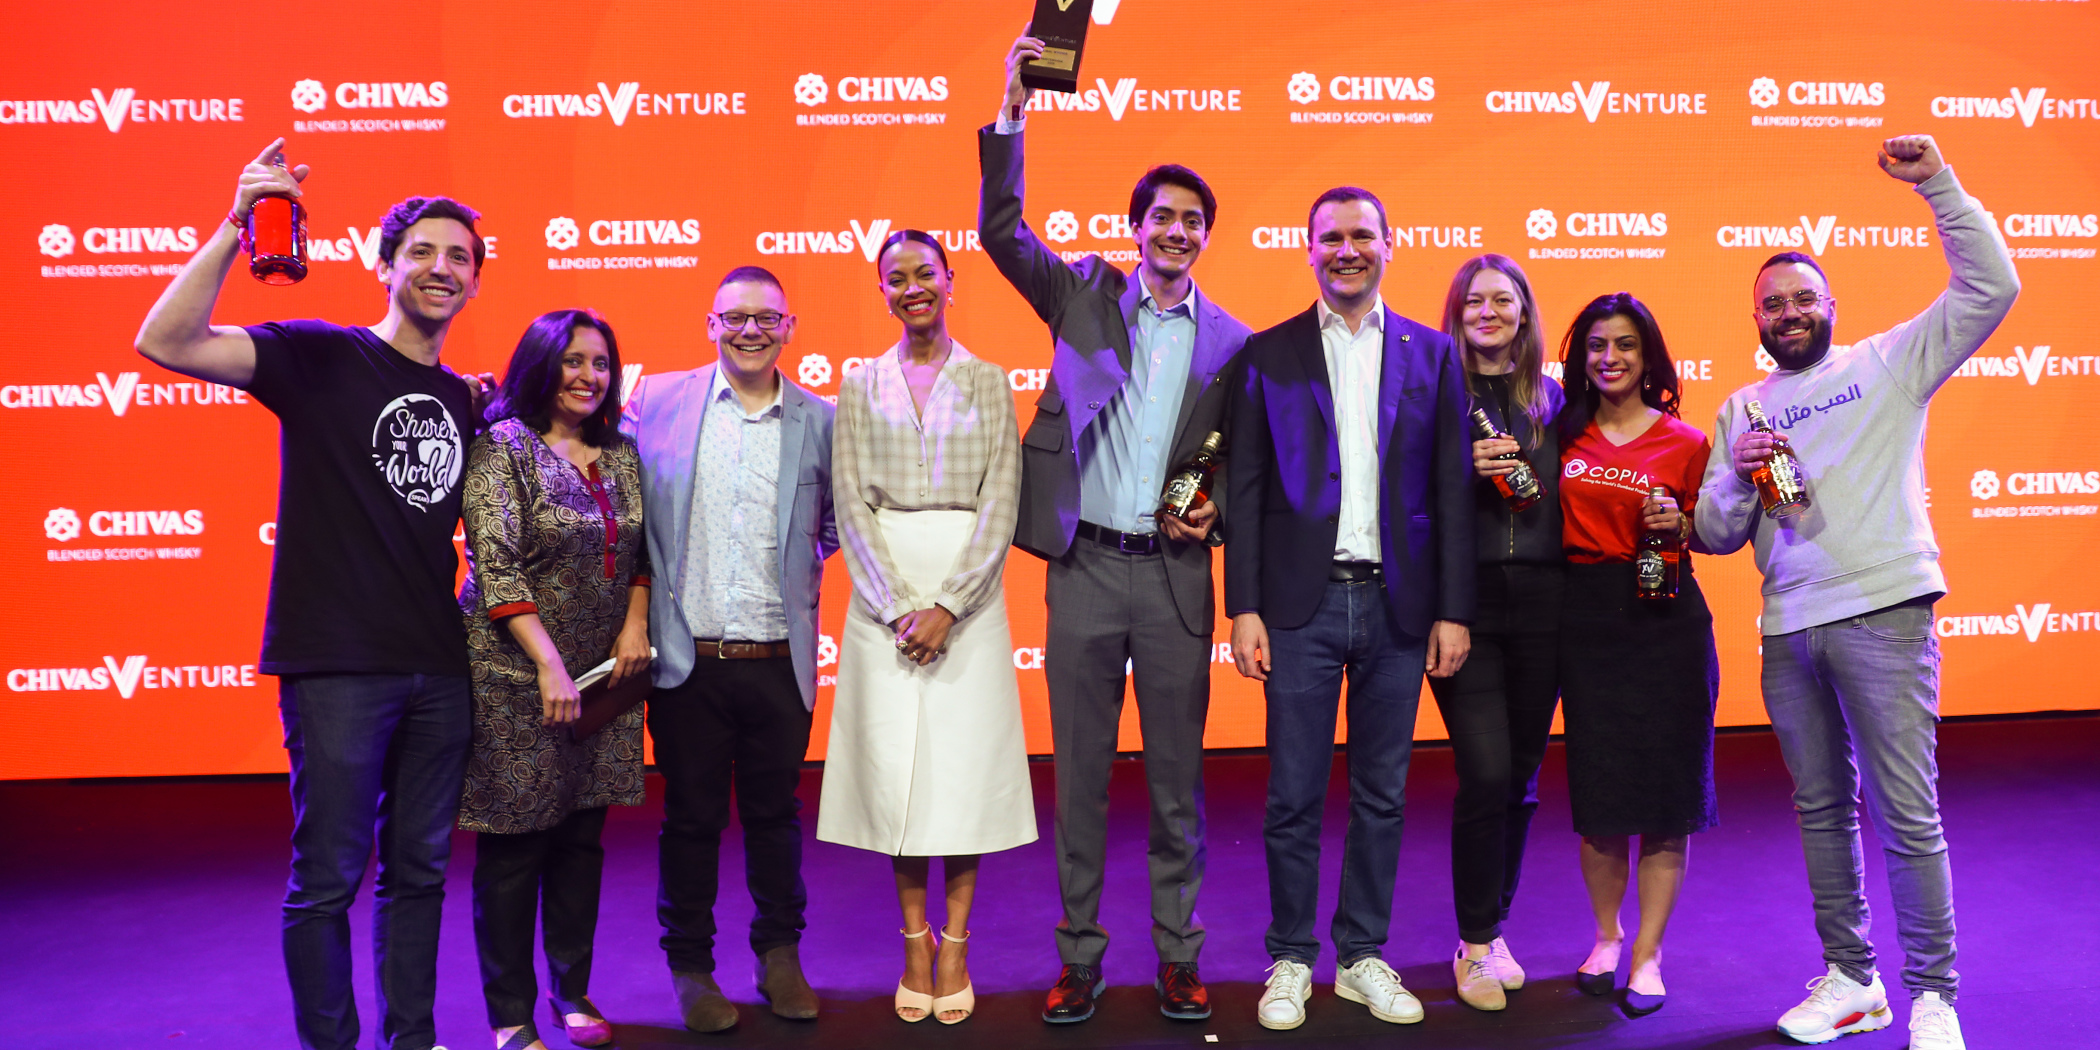 Chivas Venture $1M Startup Competition 2020 for Social Entrepreneurs